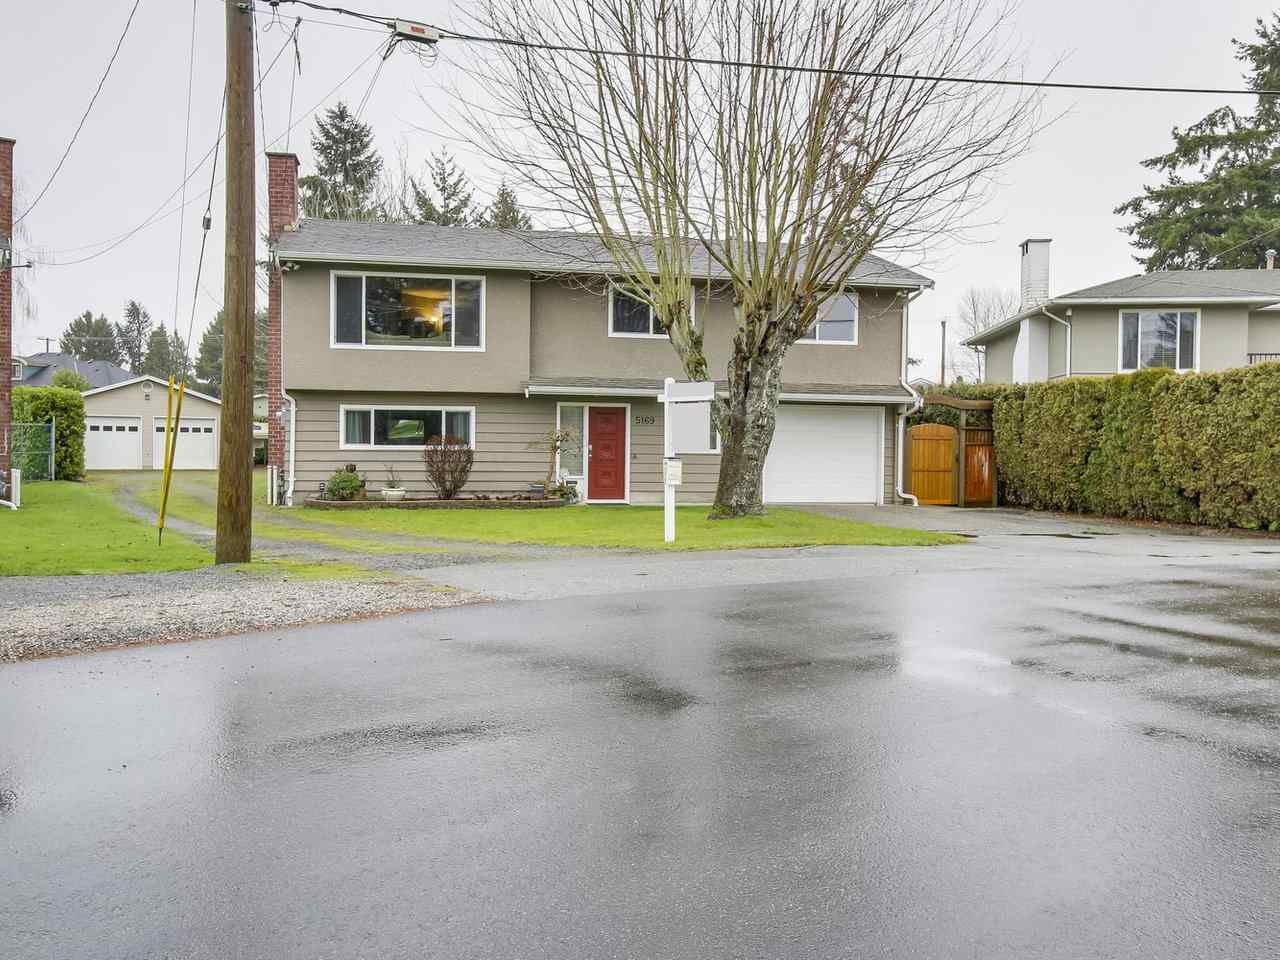 Lots of this size in Ladner are rarer than the most precious gem. 1,500 Sq.ft WORKSHOP - Outstanding opportunity in one of Ladner's most sought after neighborhoods. Updated 2,048 sq.ft, 2 level, 4 bdrm family home is on a HUGE 16,500 sq ft lot. Updated kitchen with s/s appliances, newer bathrooms, large sundeck off kitchen and fully fenced yard. MASSIVE FULLY FINISHED & INSULATED 1,500 sq.ft WORKSHOP built in 2003 with 2 x 6 construction, 100 amp service, heated, vaulted ceilings, skylights - perfect for car enthusiast, mechanic, wood working, dance, gym/art studio, home office or heated storage space or a combination of these things!  Unbeatable location - walking distance to Ladner Village, both secondary & elementary schools, parks, shops, restaurant & amenities. A fabulous property!!!